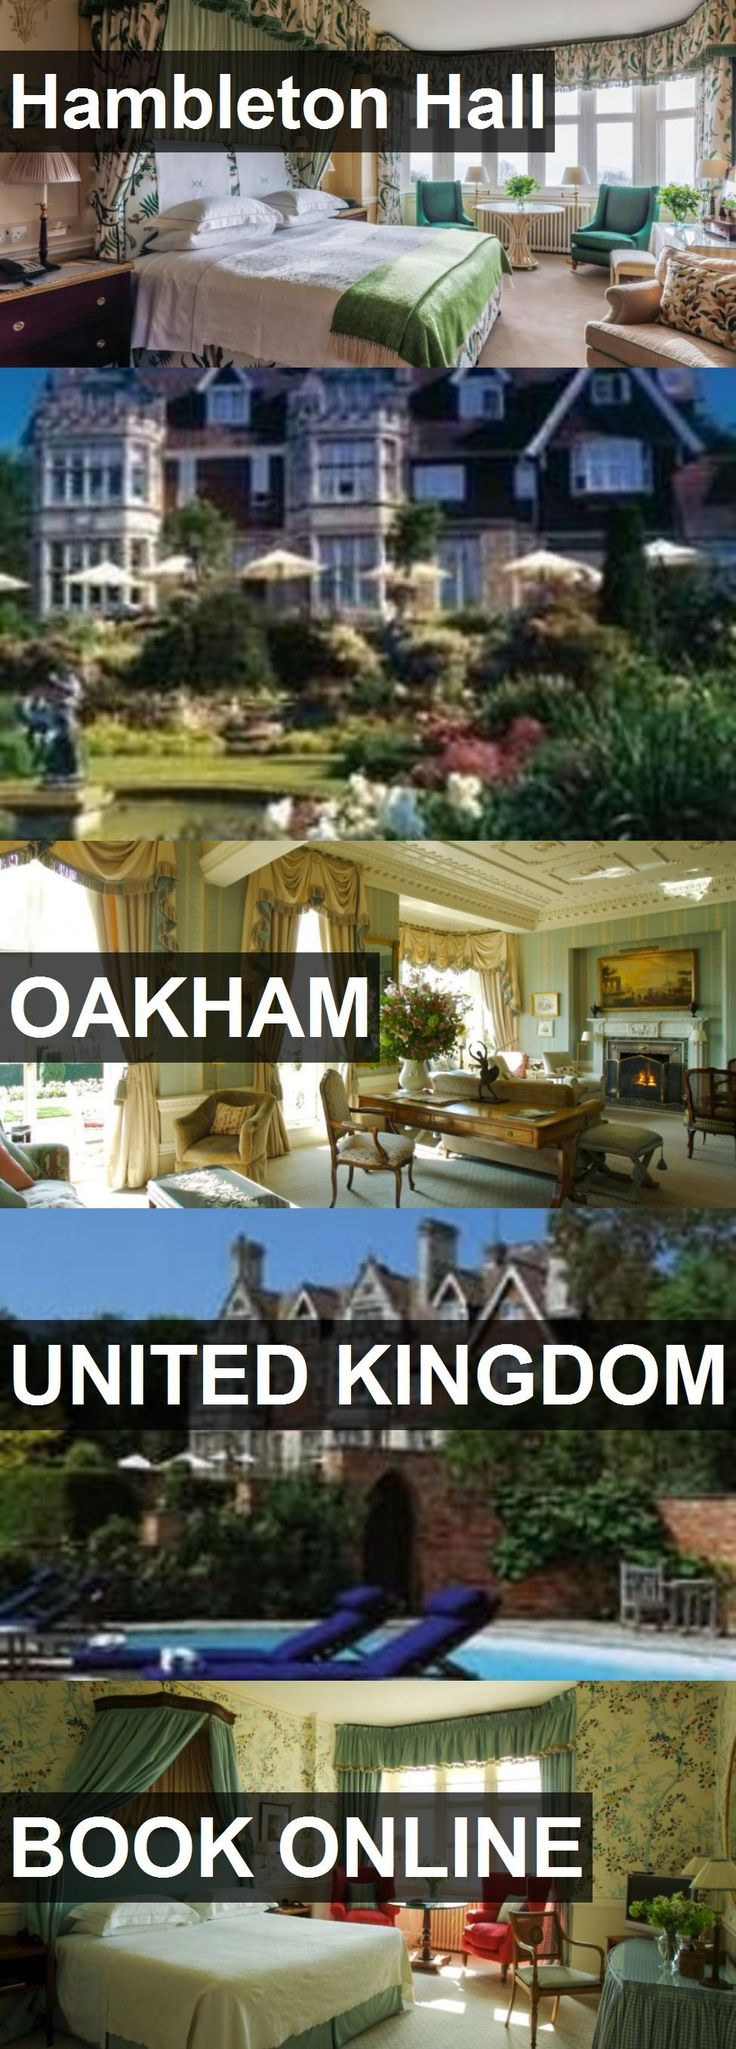 Hotel Hambleton Hall in Oakham, United Kingdom. For more information, photos, reviews and best prices please follow the link. #UnitedKingdom #Oakham #HambletonHall #hotel #travel #vacation